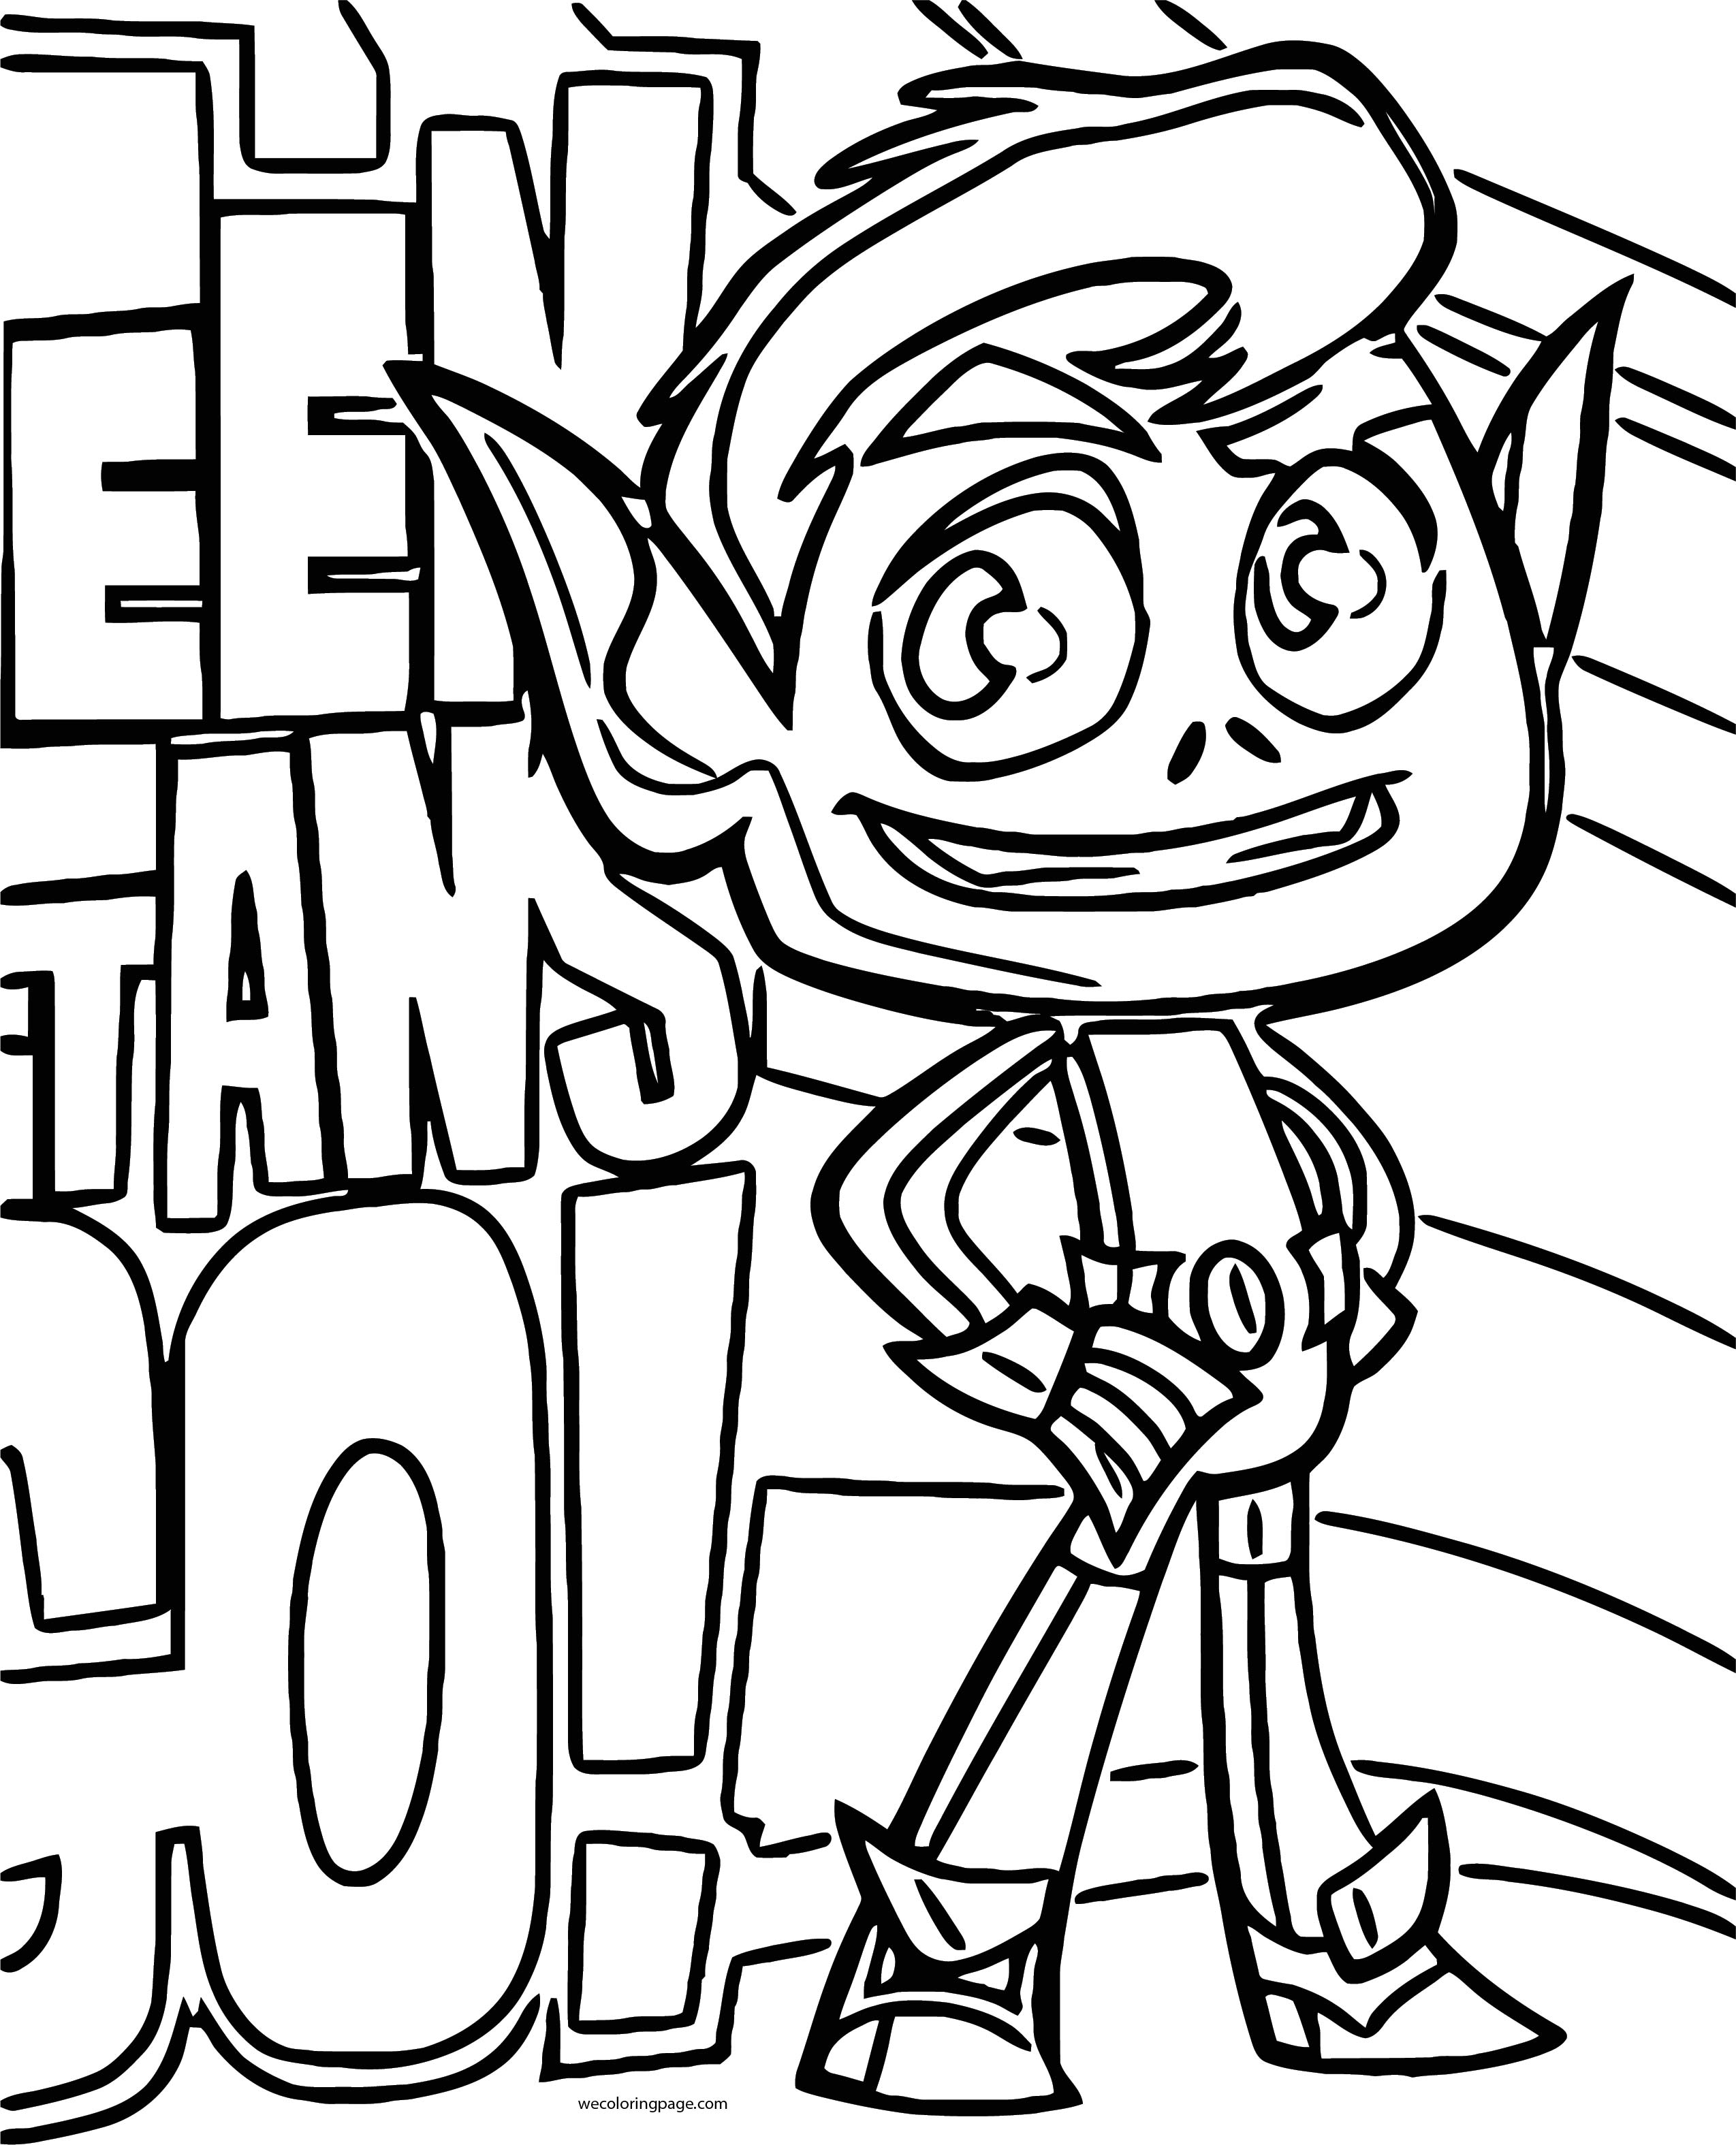 How To Draw Beast Boy From Teen Titans Go Ready Coloring Page